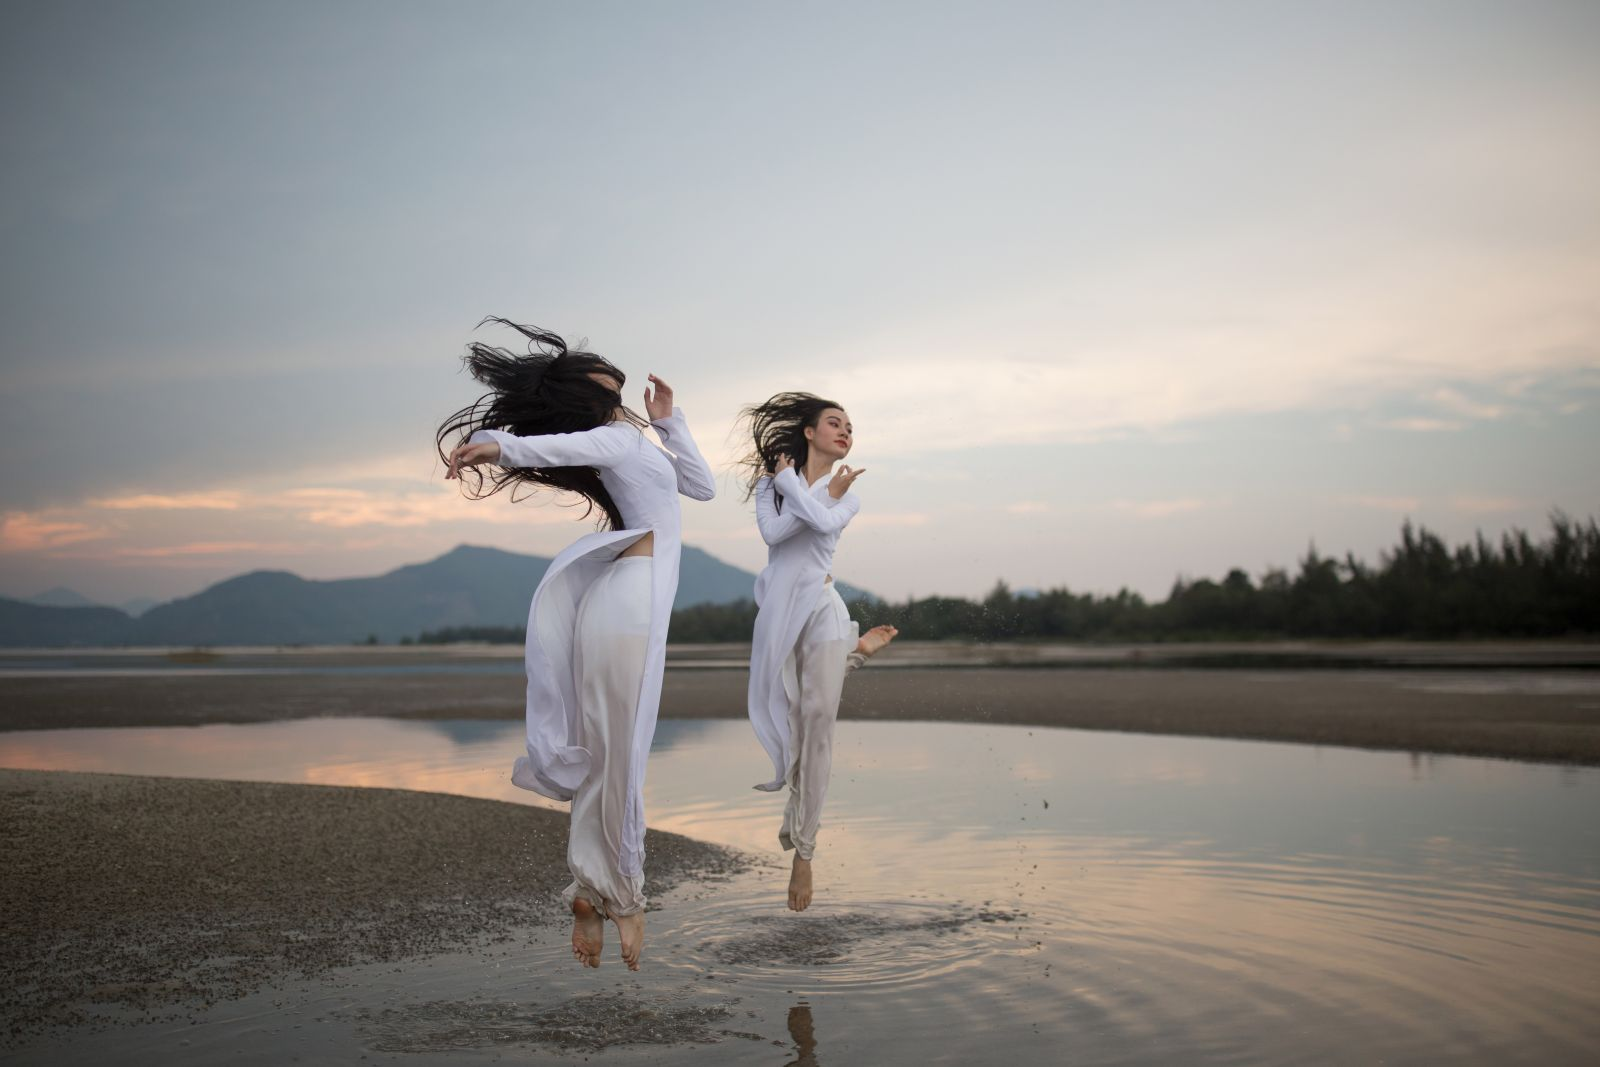 Dancing is not an art that is exclusive to the stage. The outdoors is the largest stage nature offers.